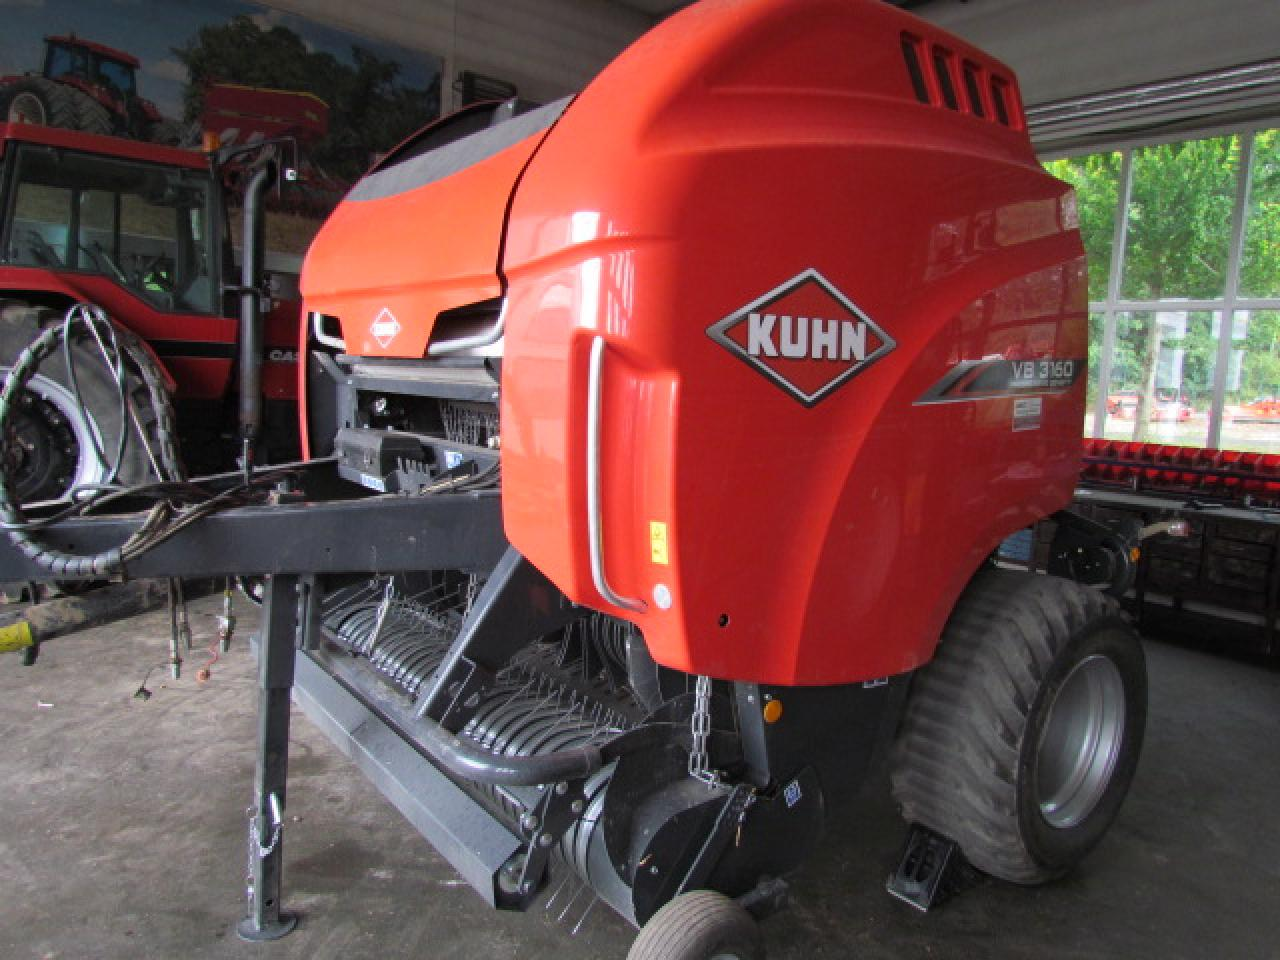 Kuhn VB3160 Opticut